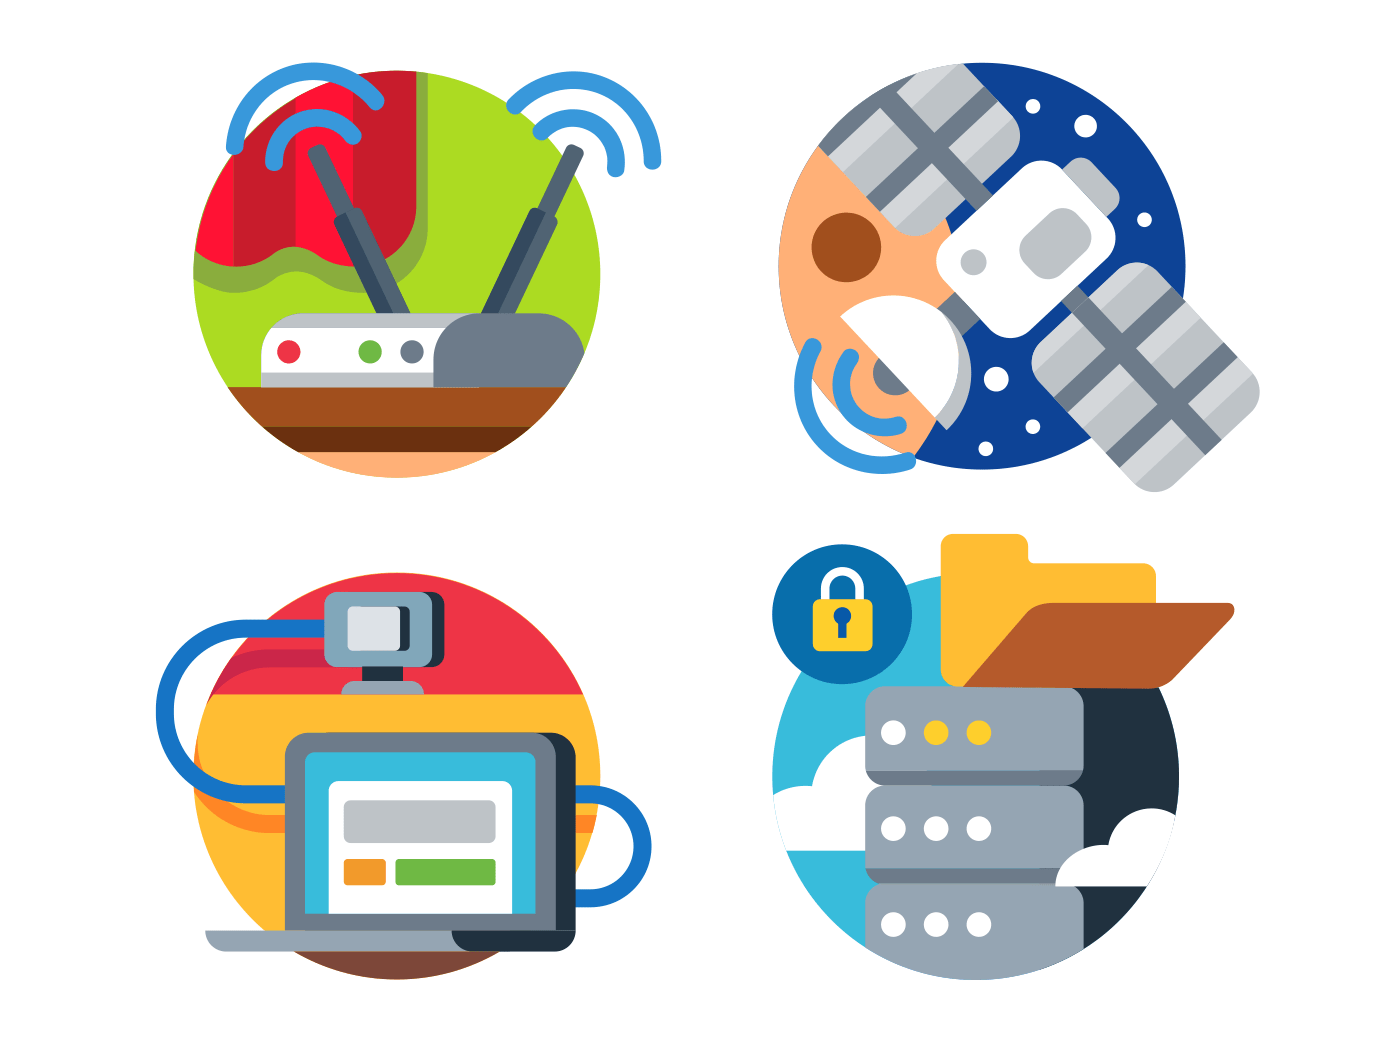 Internet technology icons